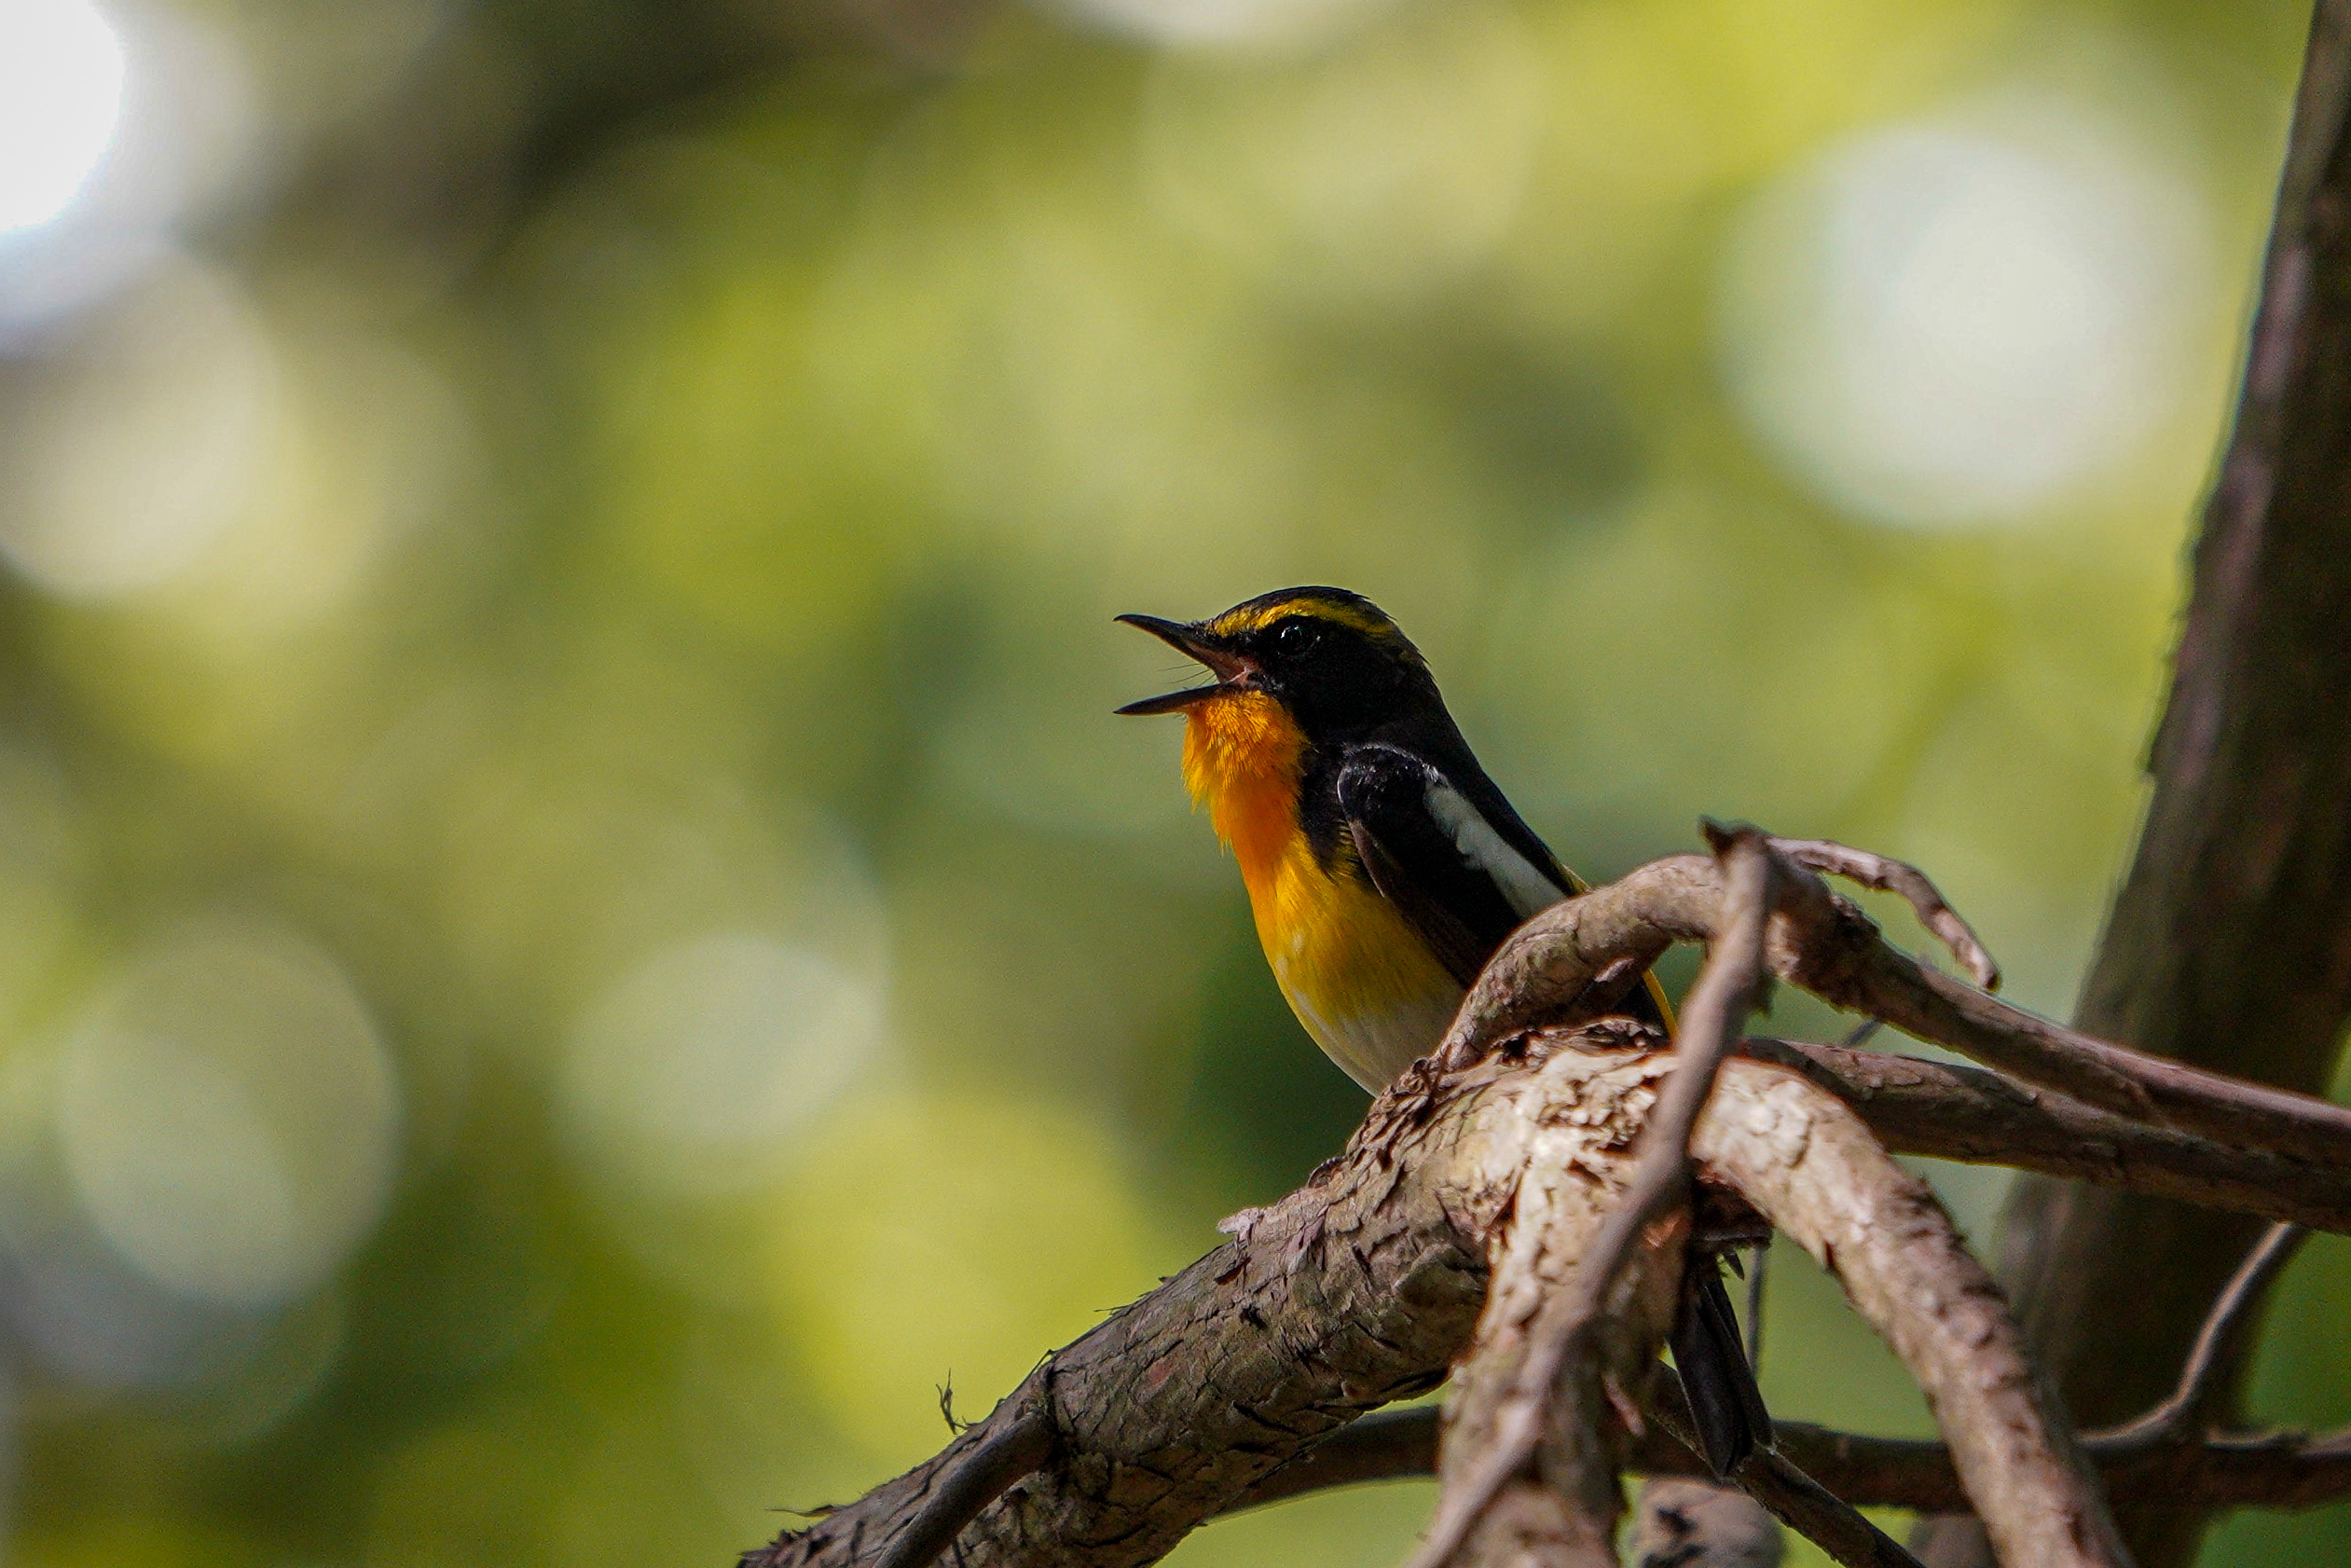 キビタキ Narcissus flycatcher